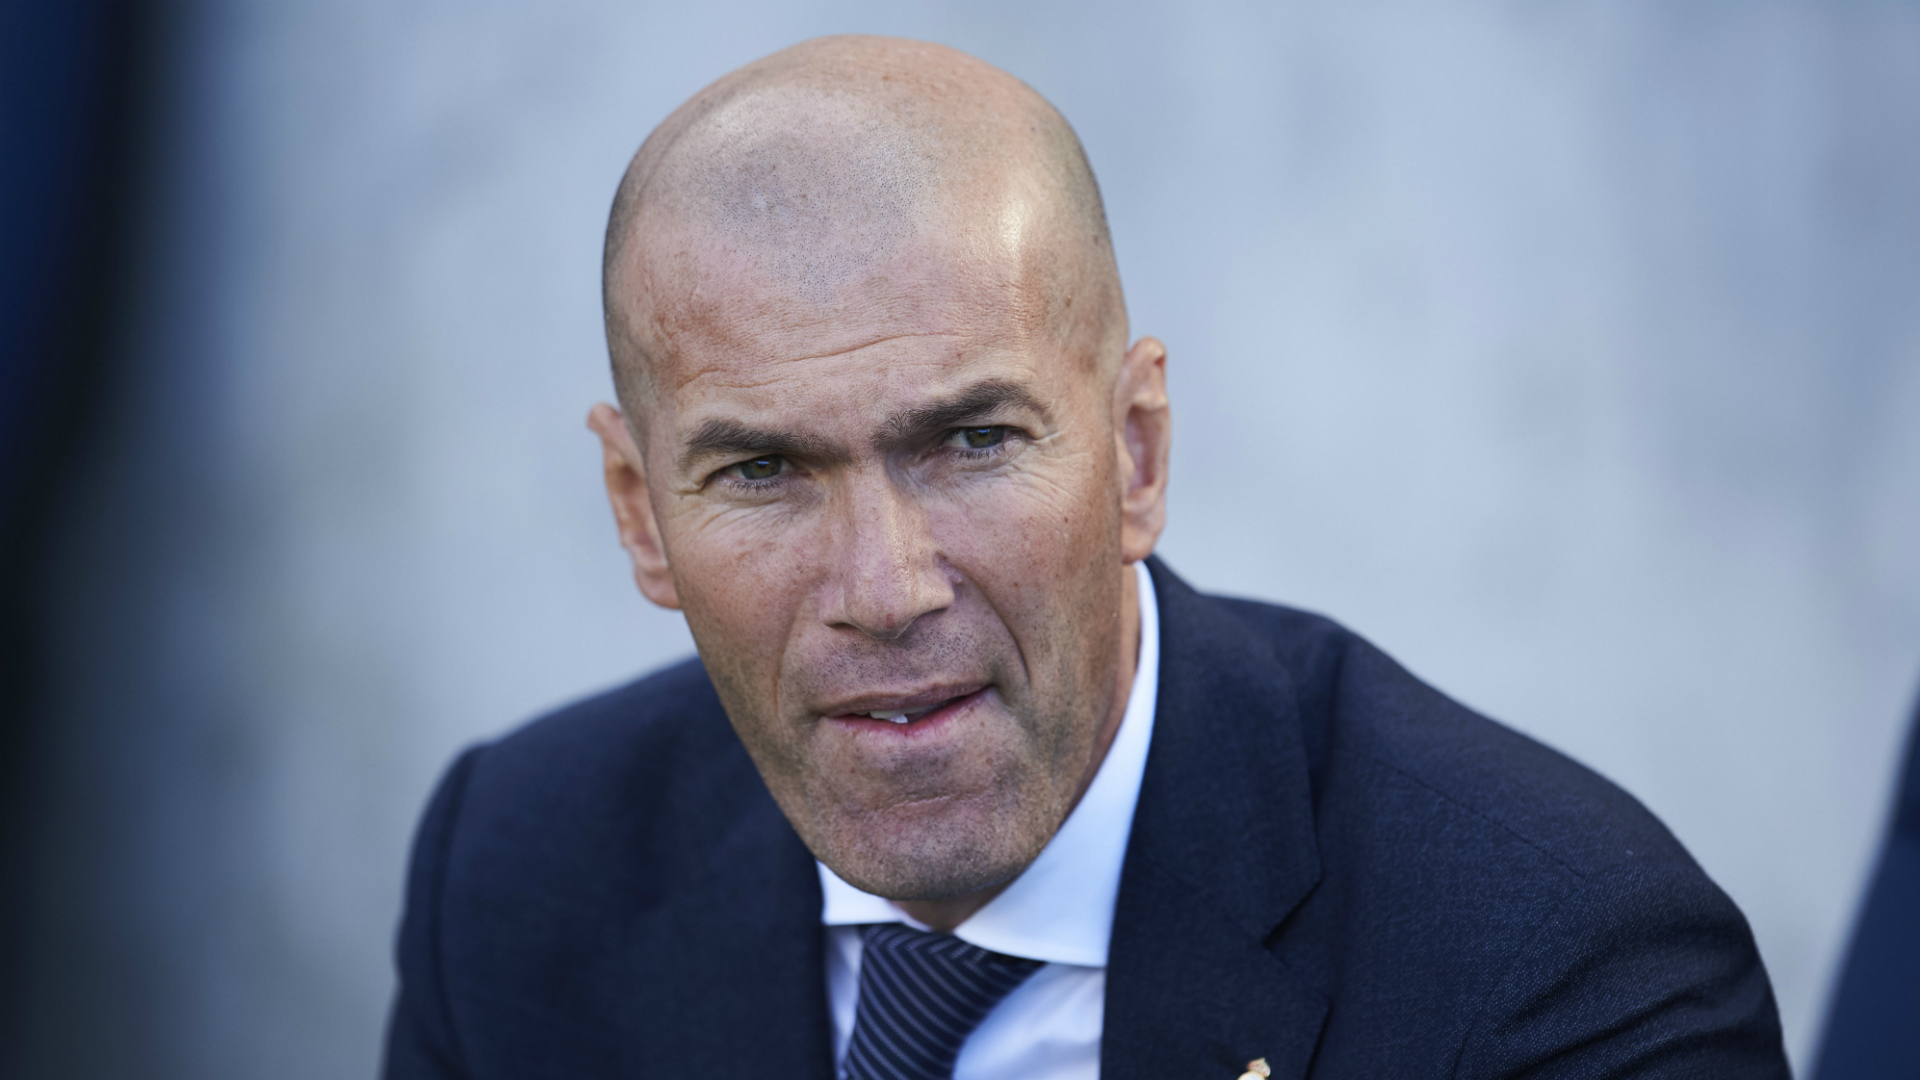 'Mourinho rumours don't bother me' - Zidane will 'never back down' amid Real Madrid pressure